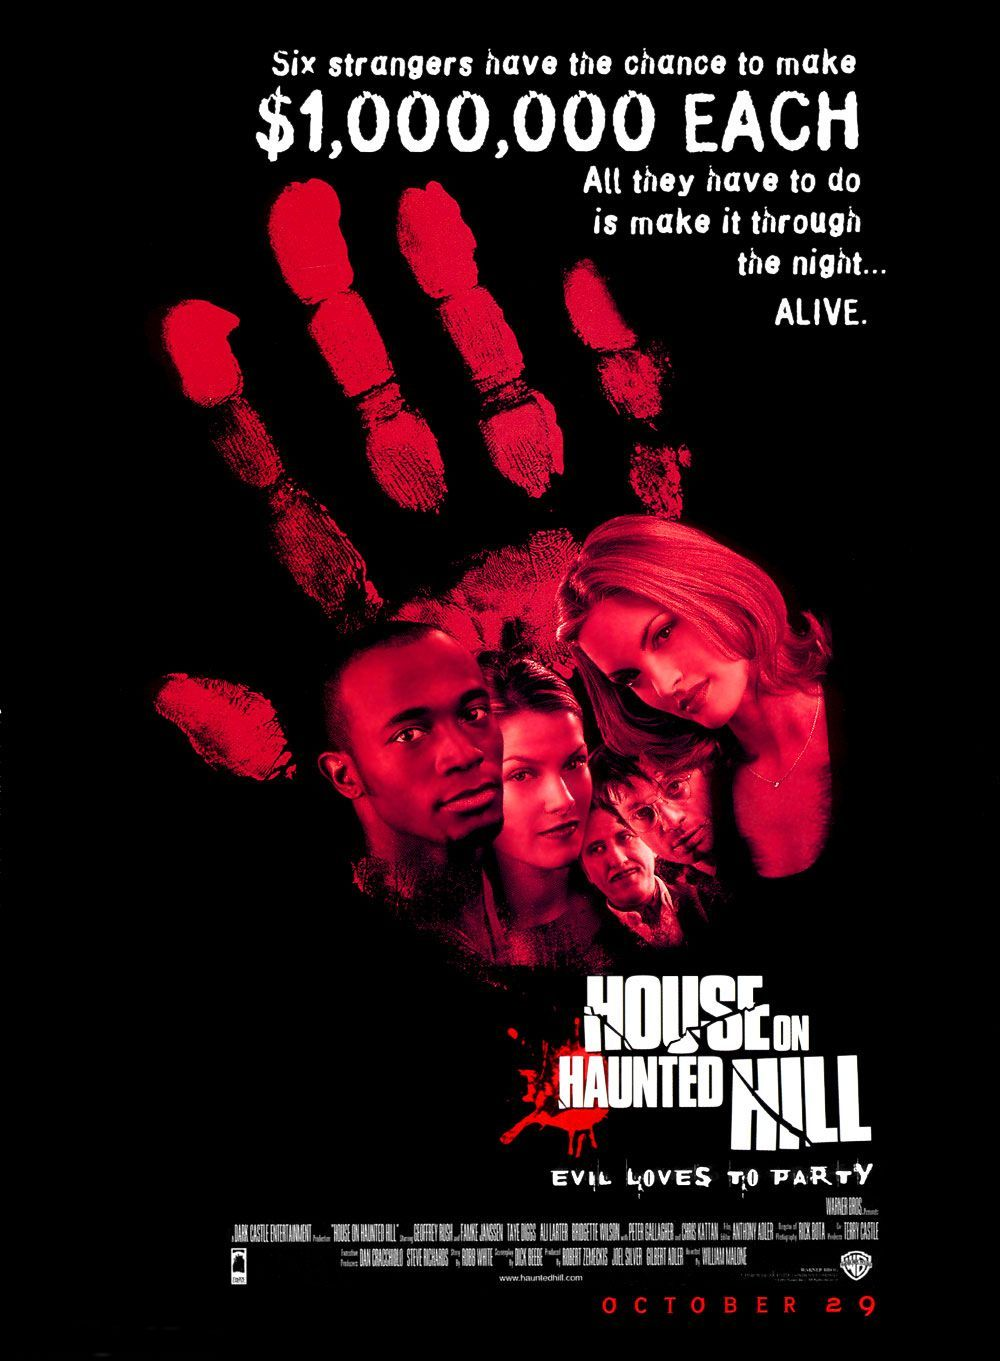 House On Haunted Hill (1999) – Remake done right